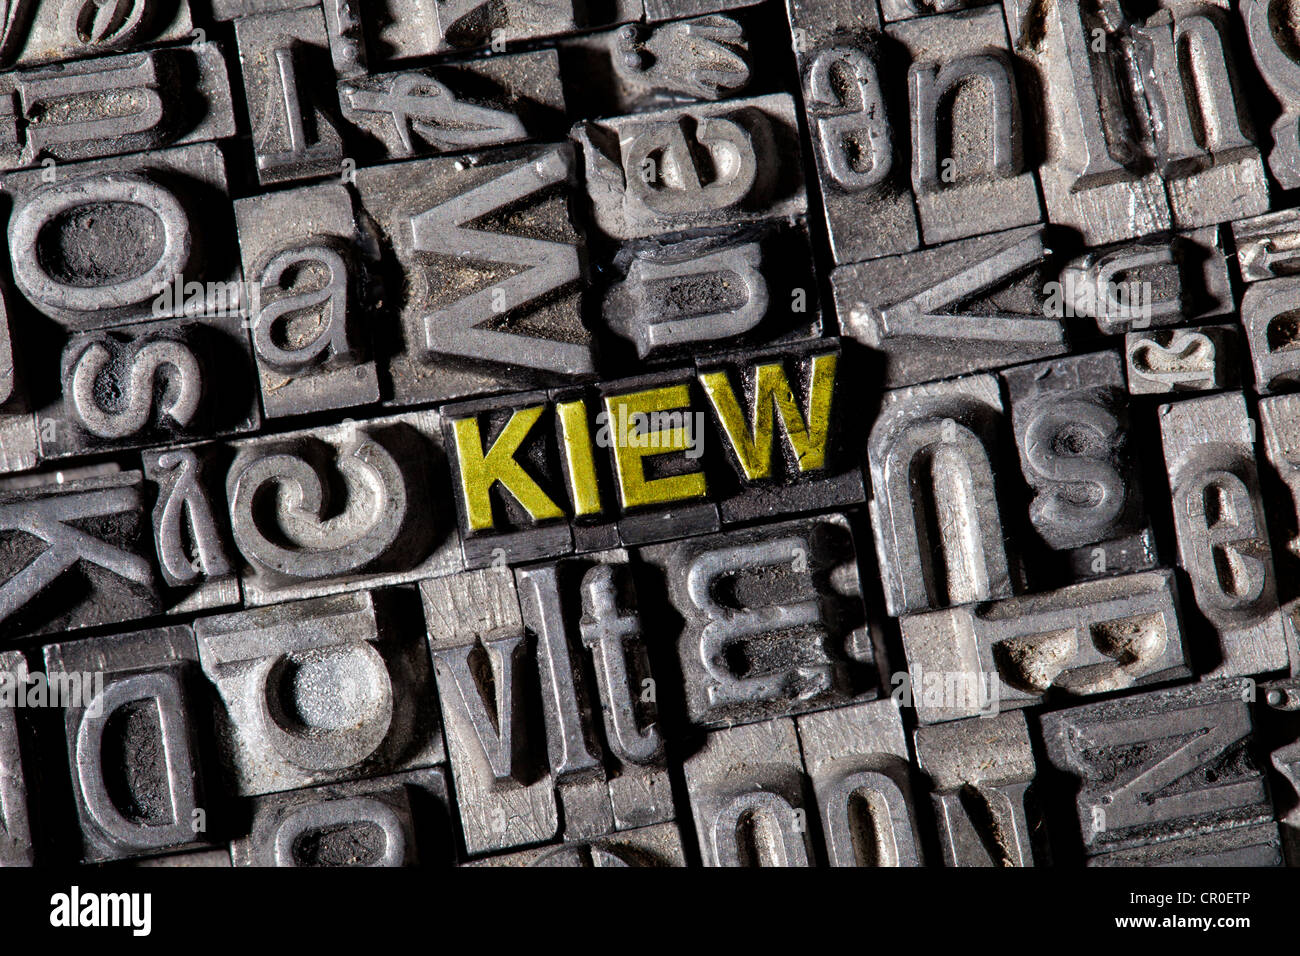 Old lead letters forming the word Kiew, German for Kiev - Stock Image